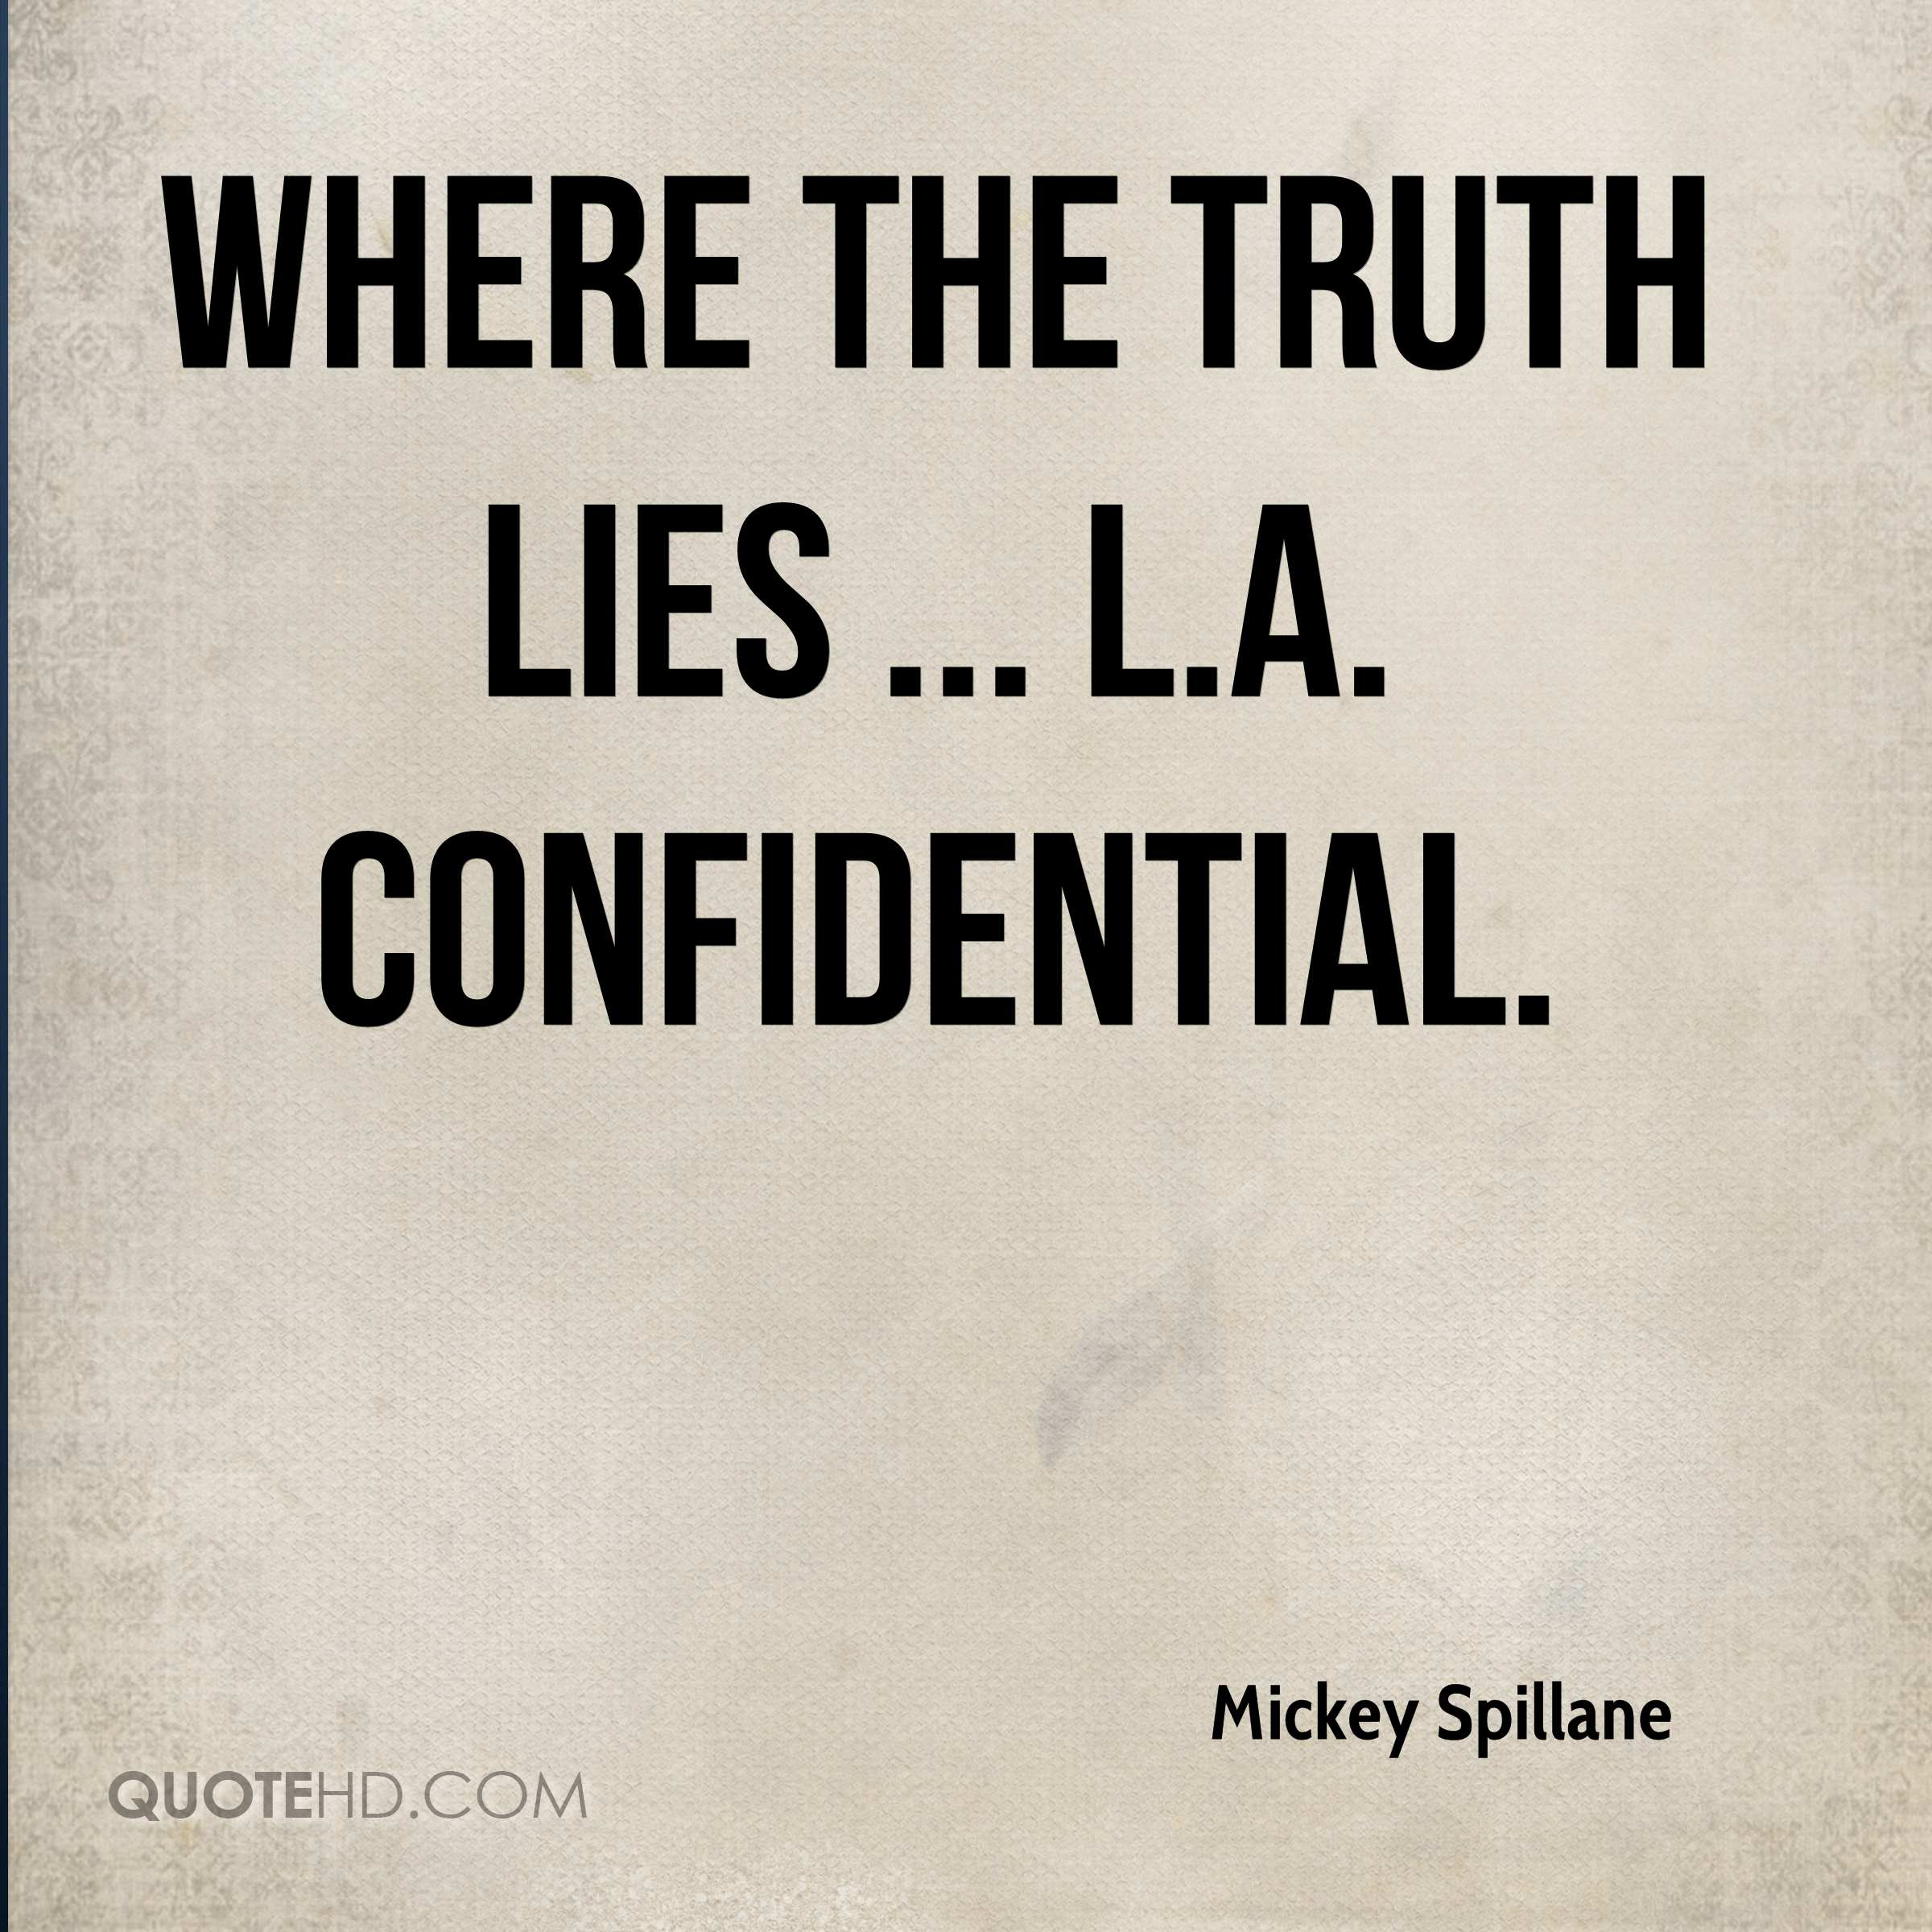 Truth lies quotes